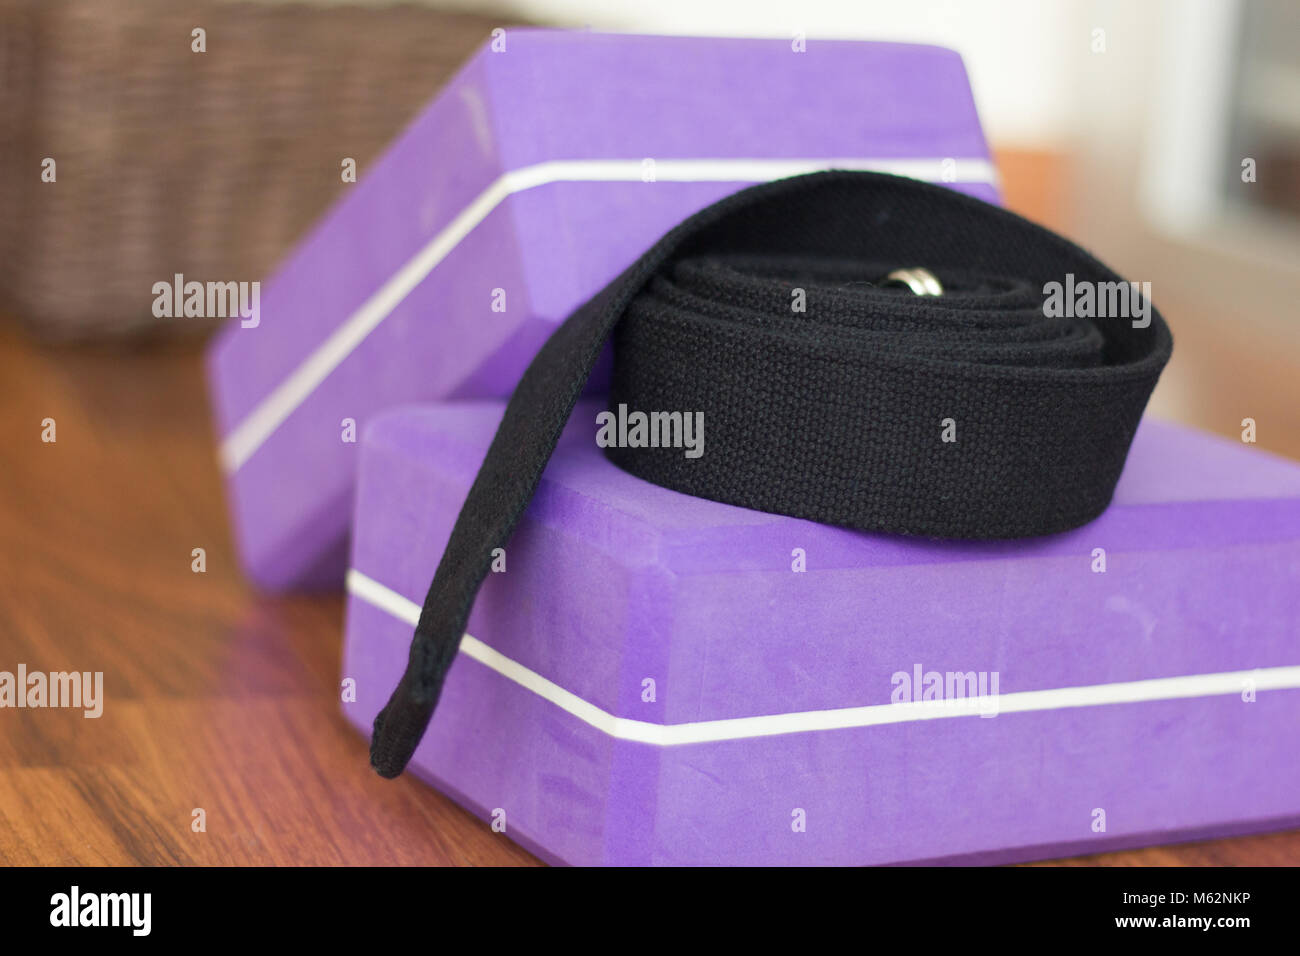 Close up on yoga purple blocks and black belt. Yoga studio material props - Stock Image